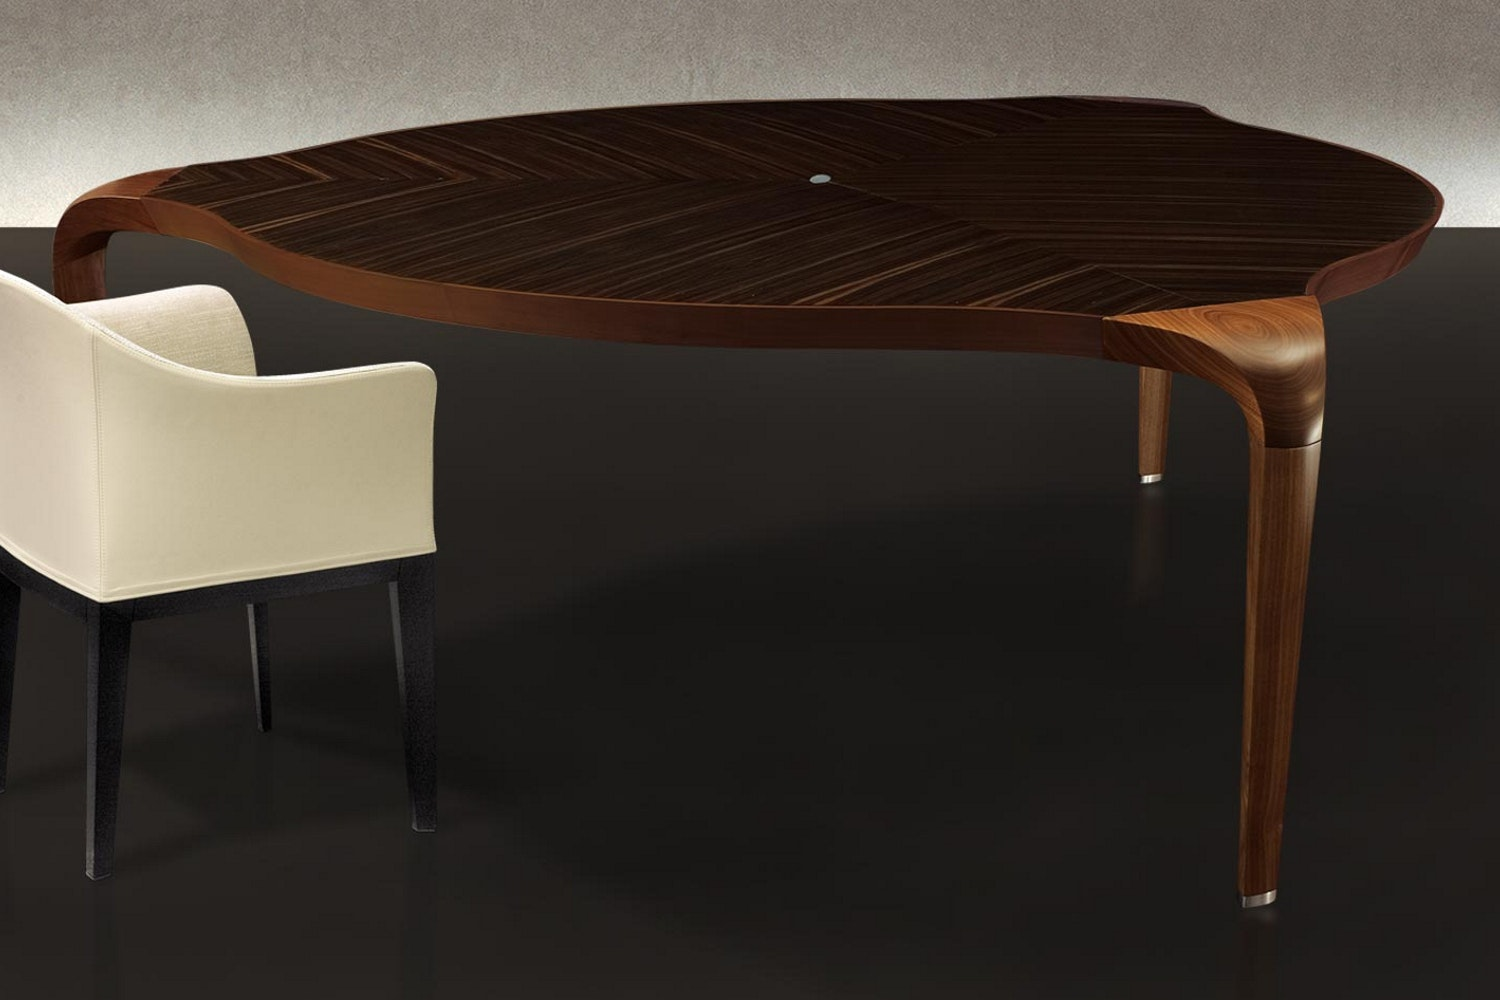 Erasmo 2010 Table by Massimo Scolari for Giorgetti